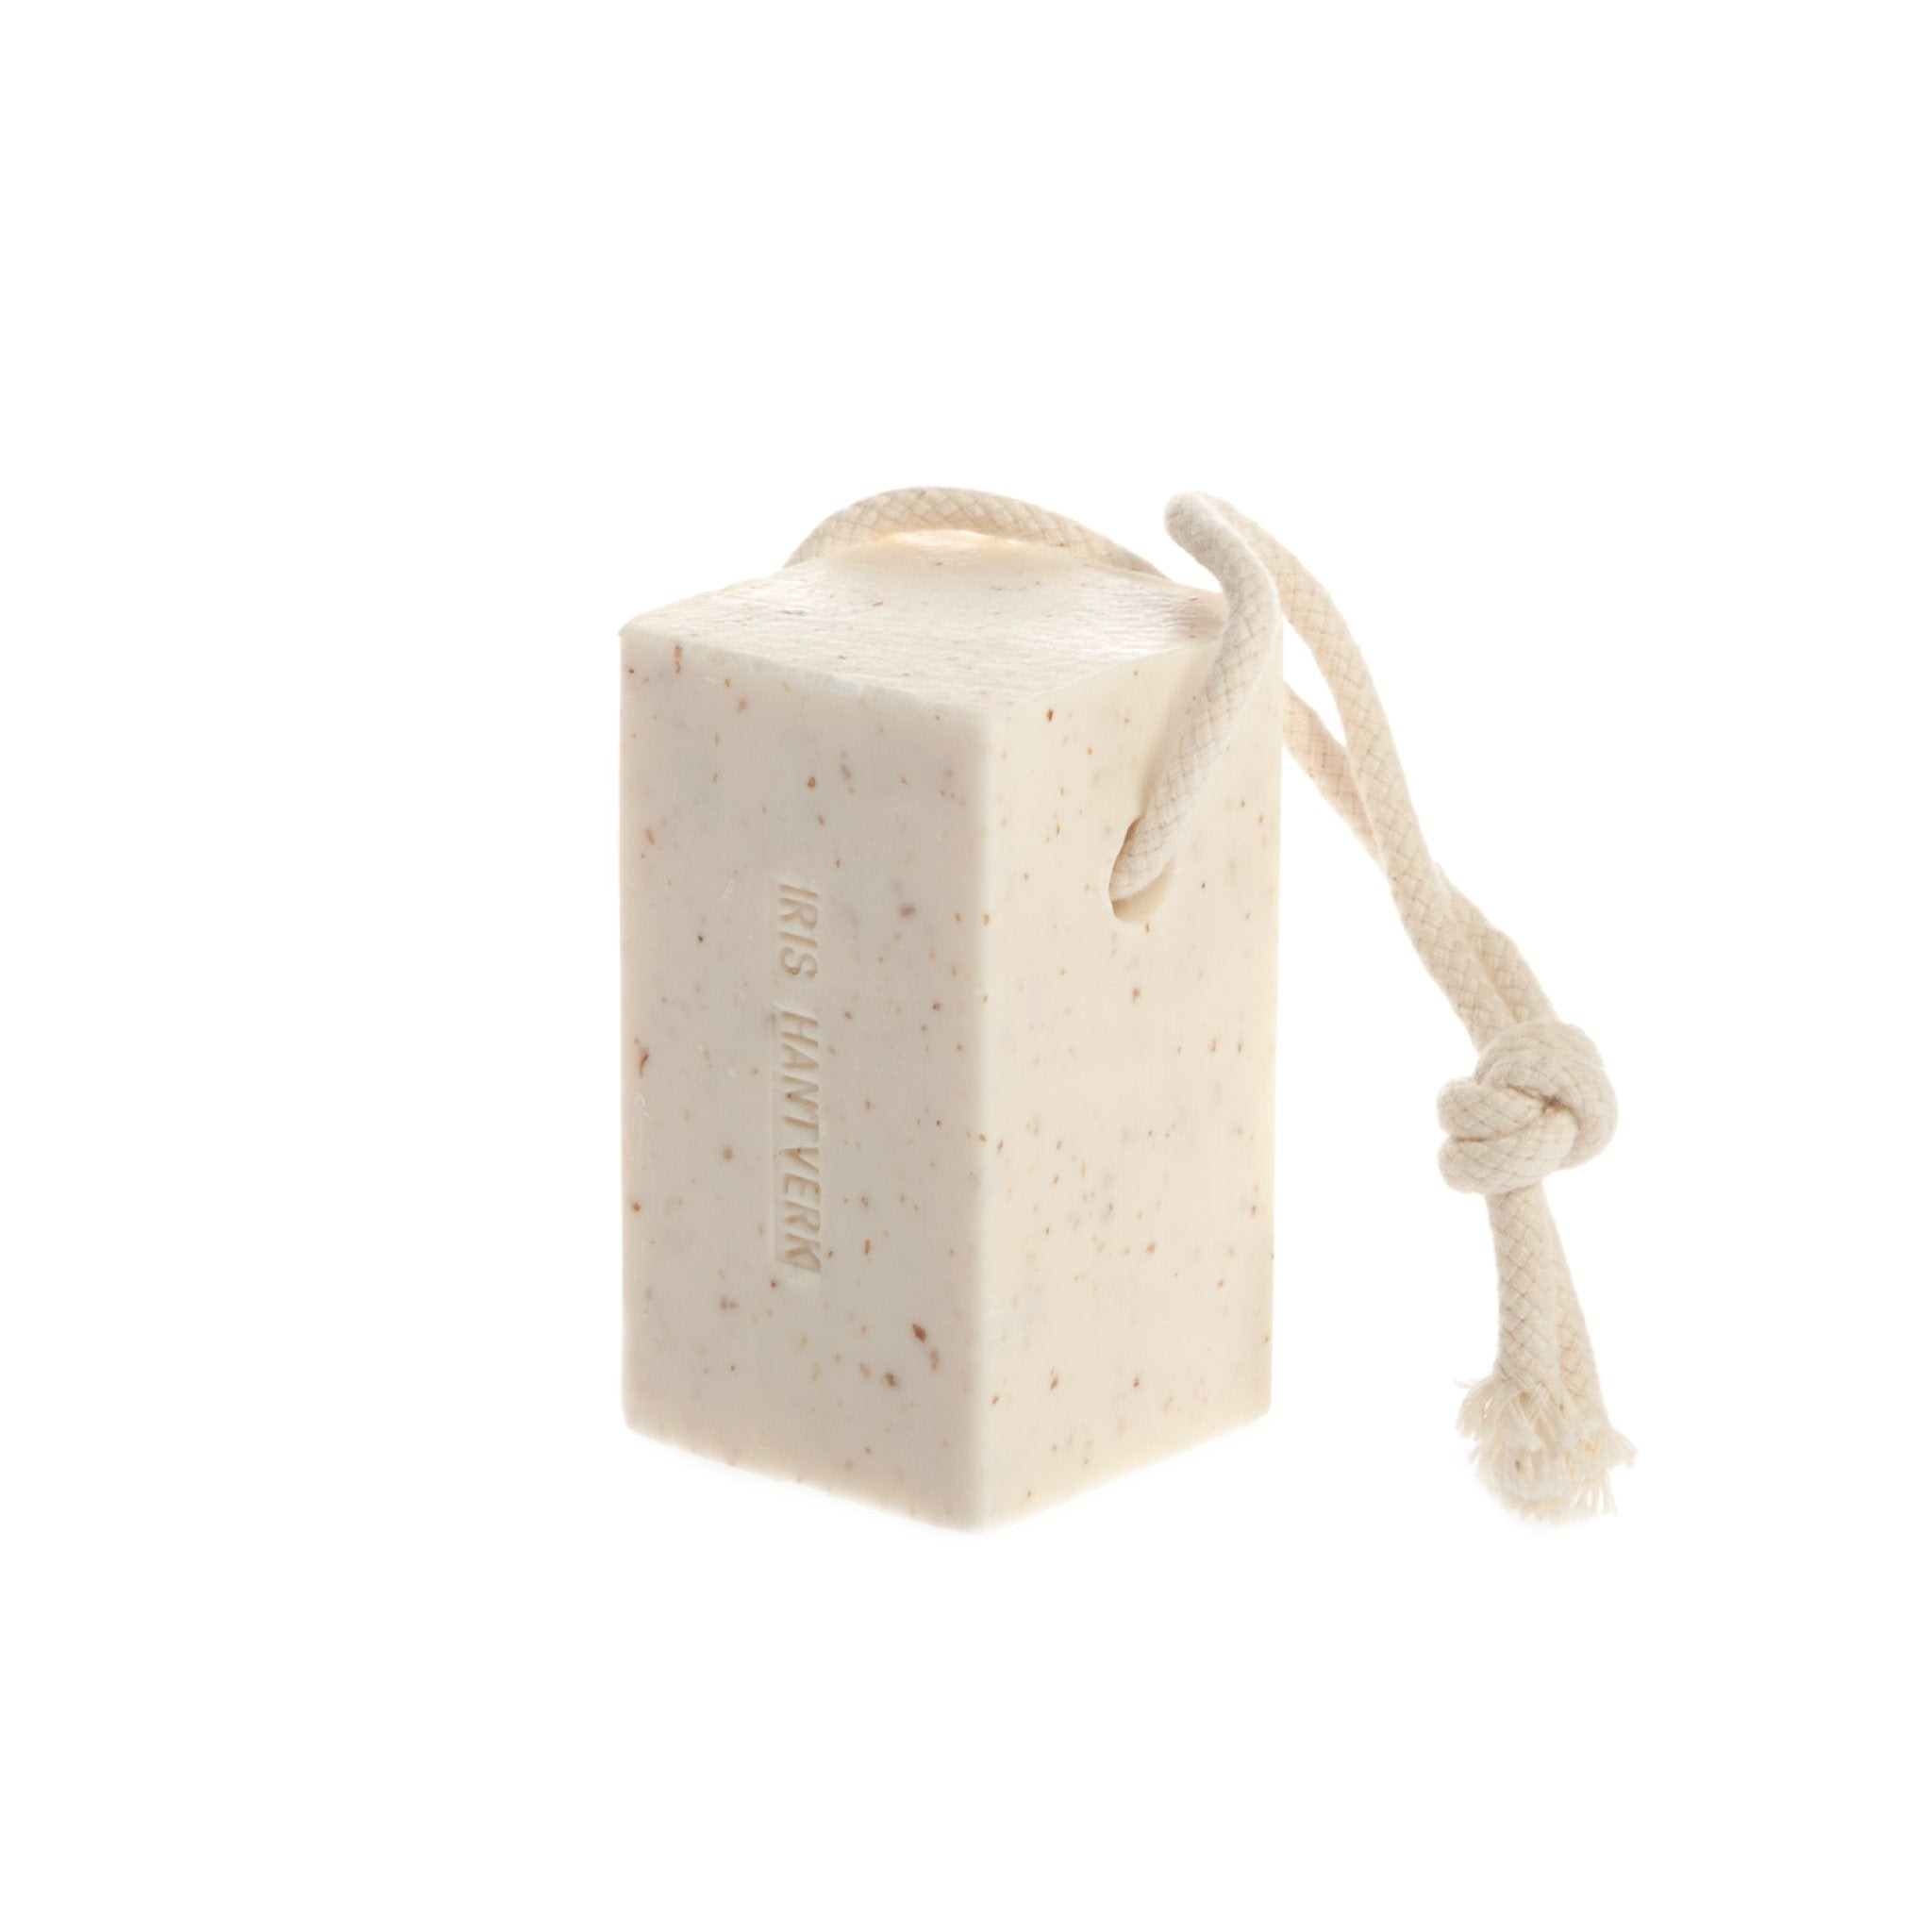 Almond Soap On a Rope by Iris Hantverk